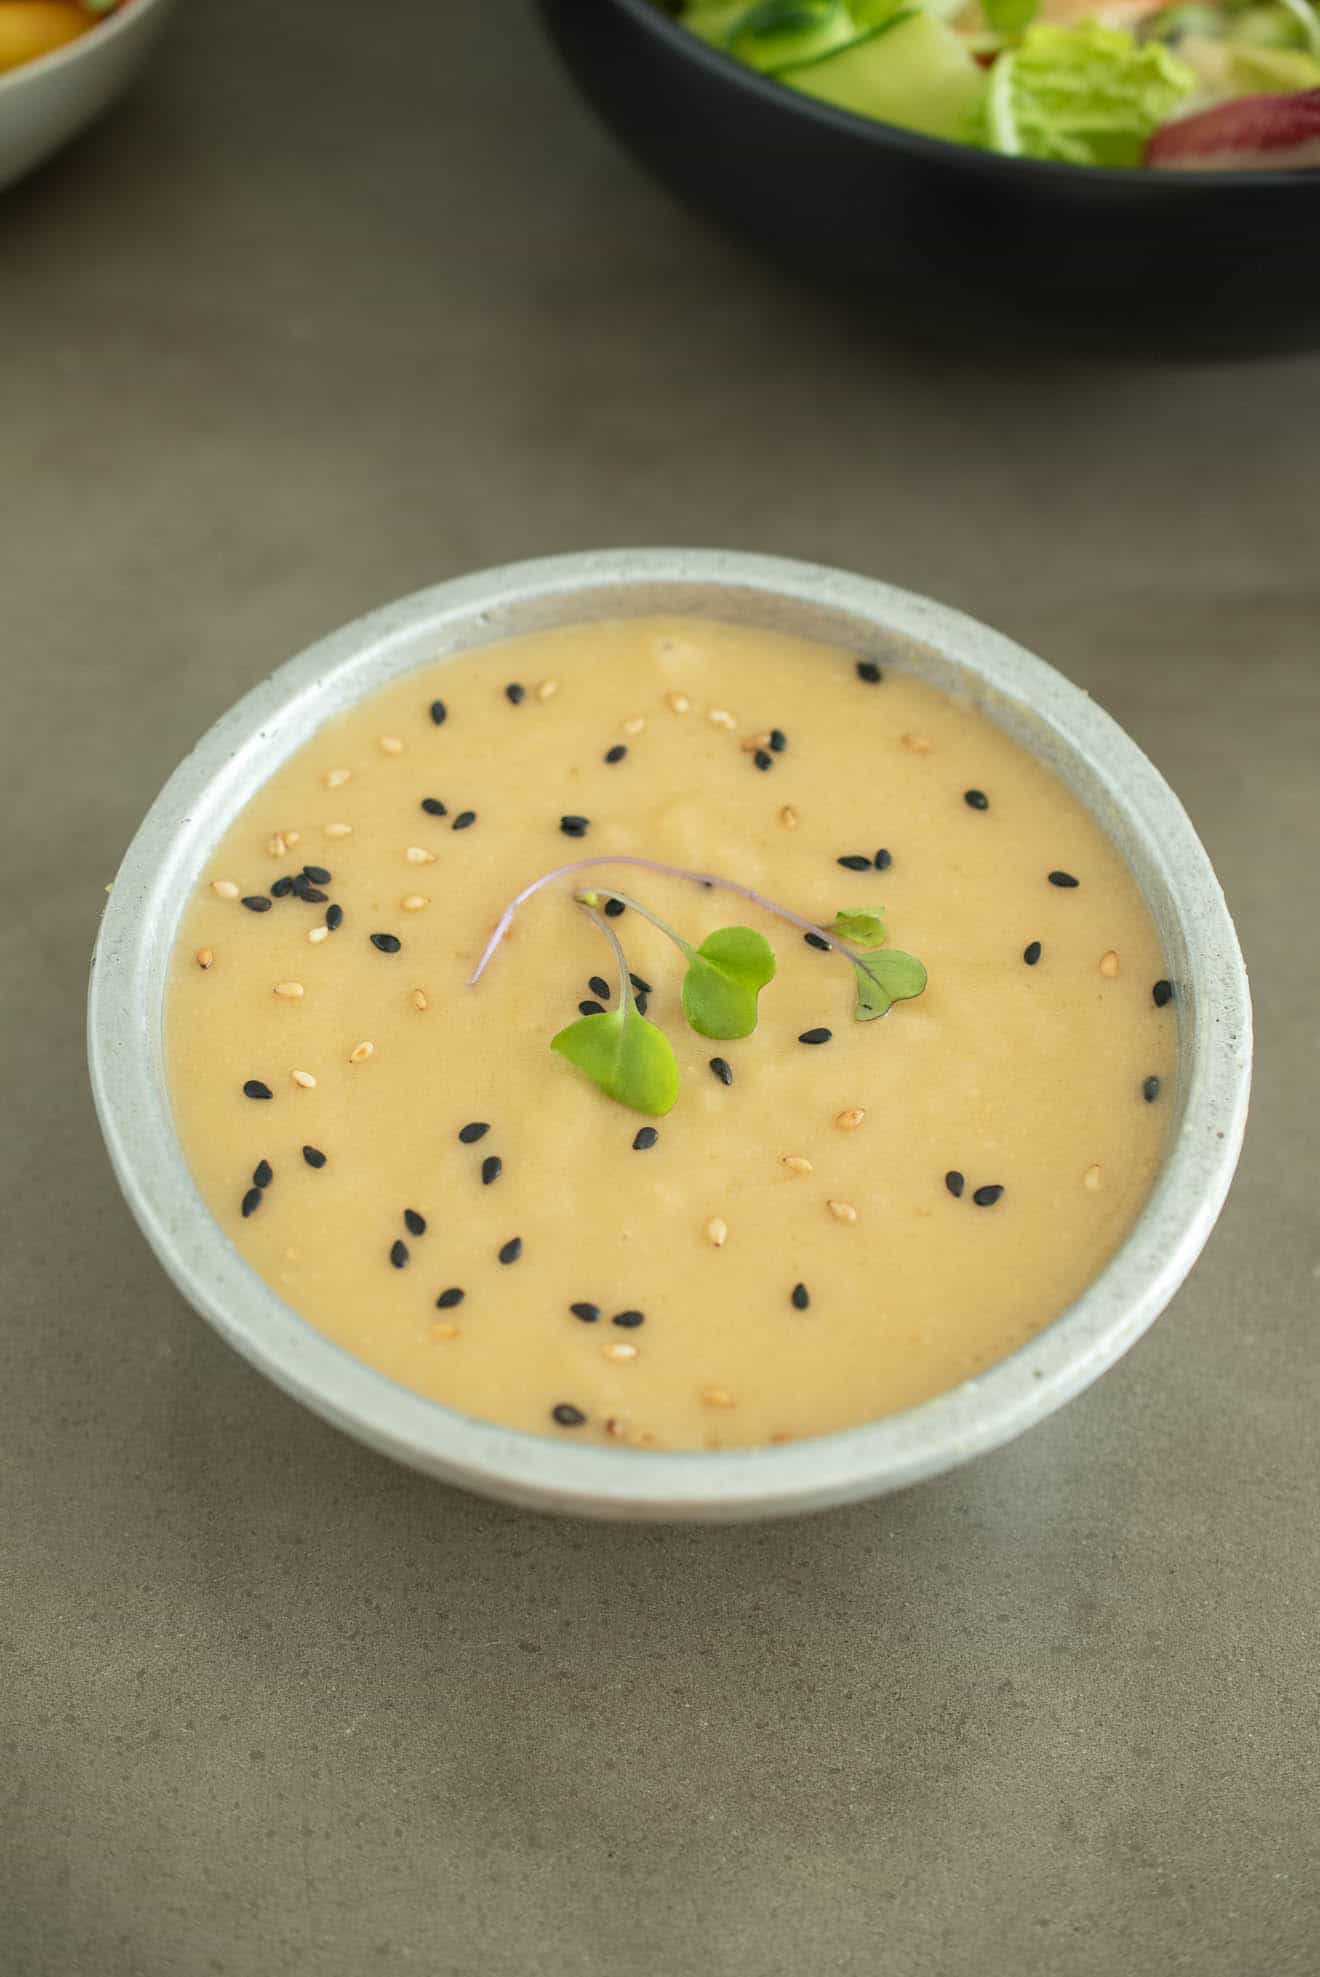 A grey bowl of miso dressing sauce and marinade topped with micro greens and sesame seeds